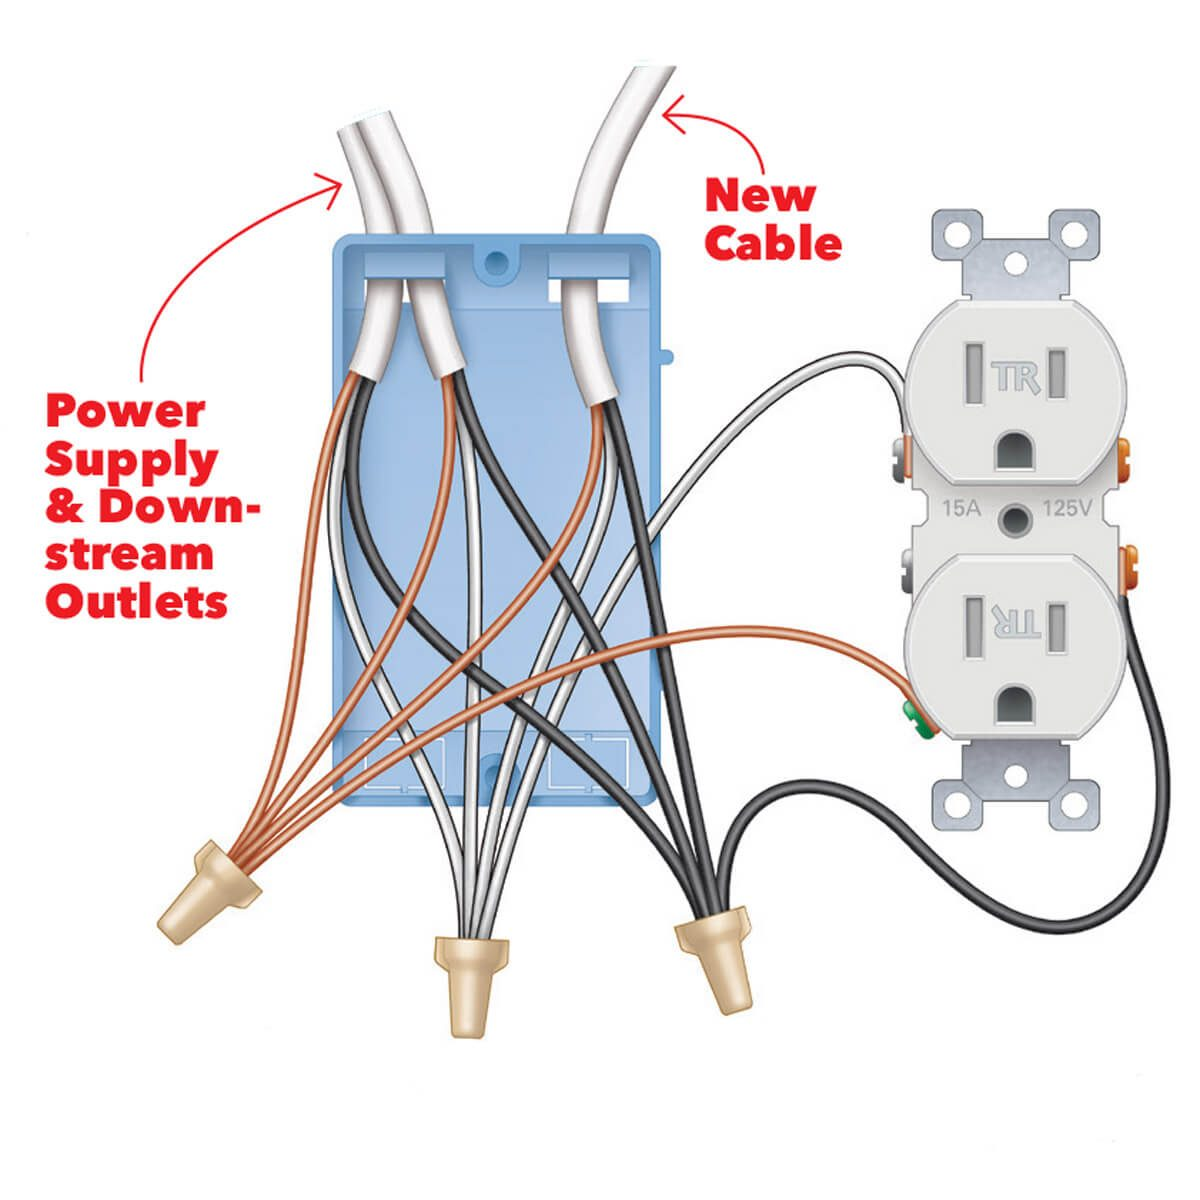 hight resolution of 061 fhm octnov17 1 figure b wiring a new outlet usb